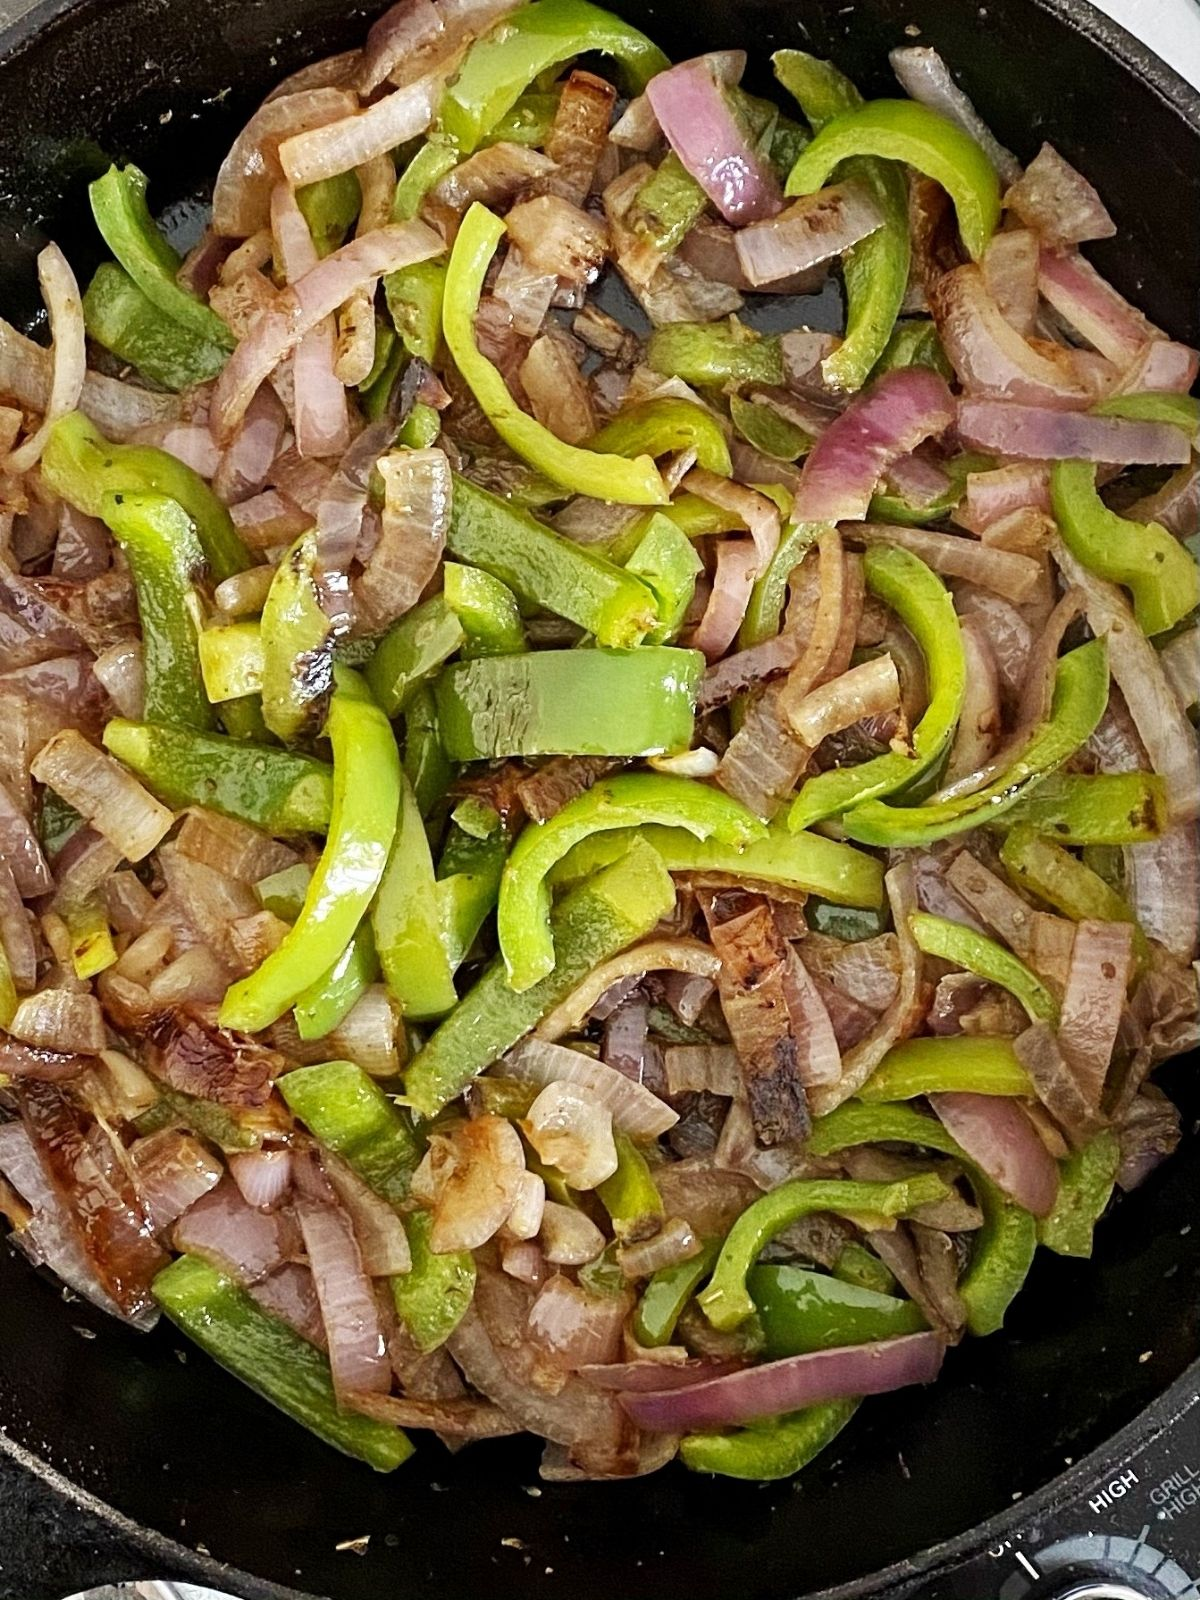 skillet of charred peppers and onions